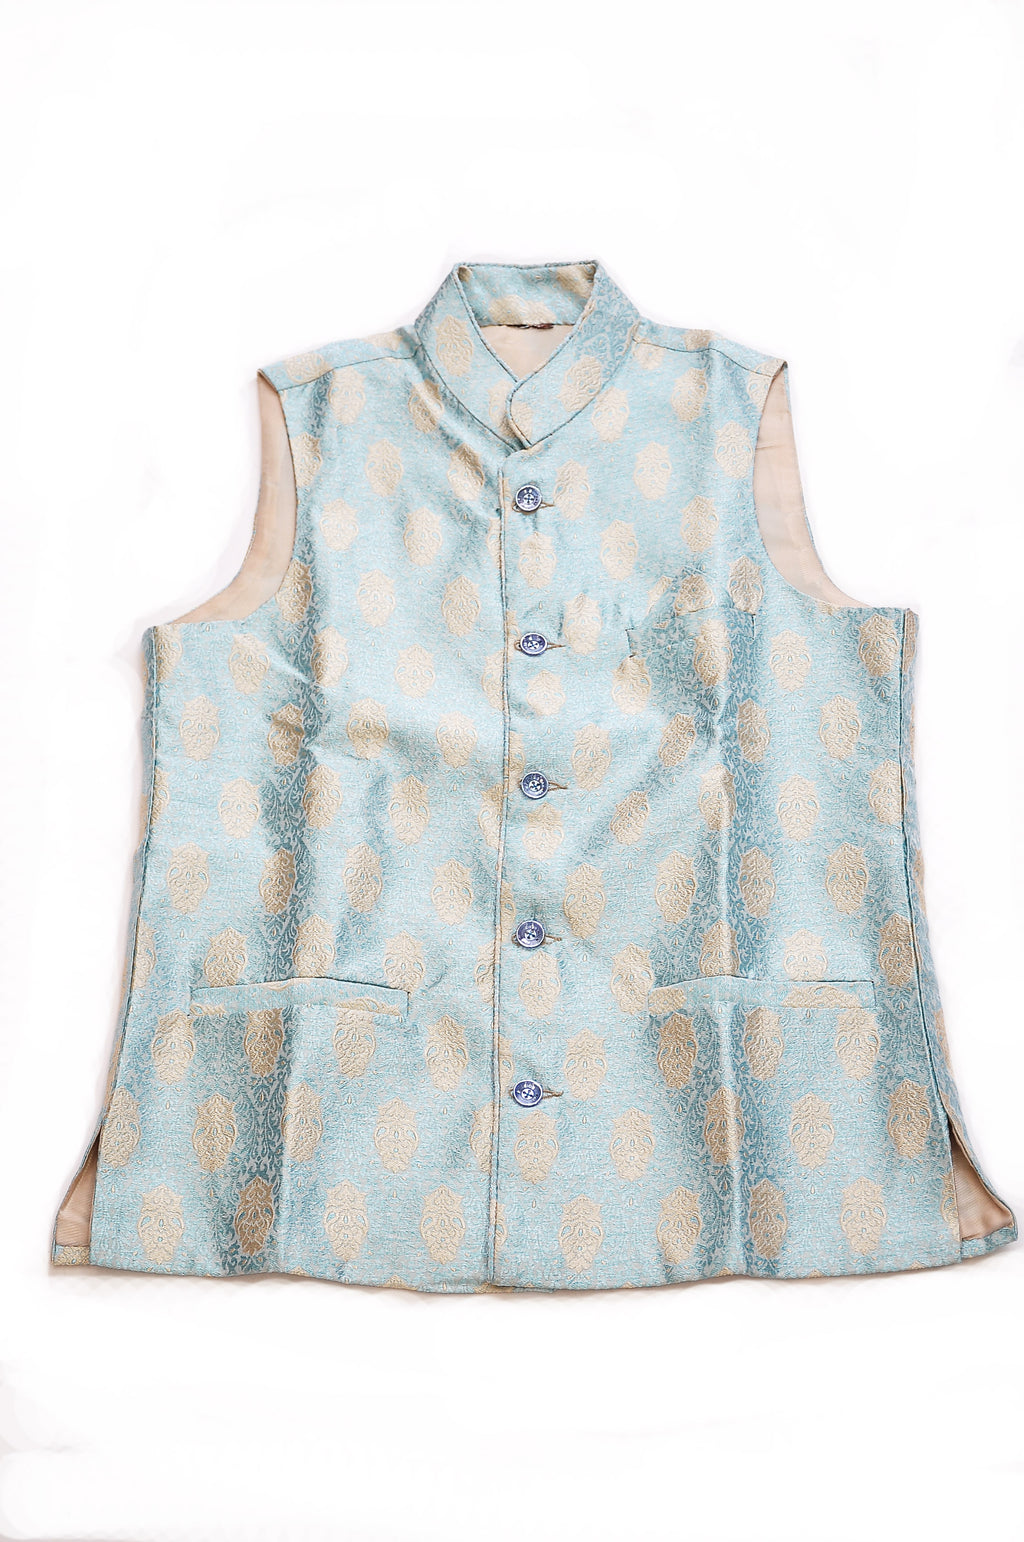 Baby Blue and Ivory Vest